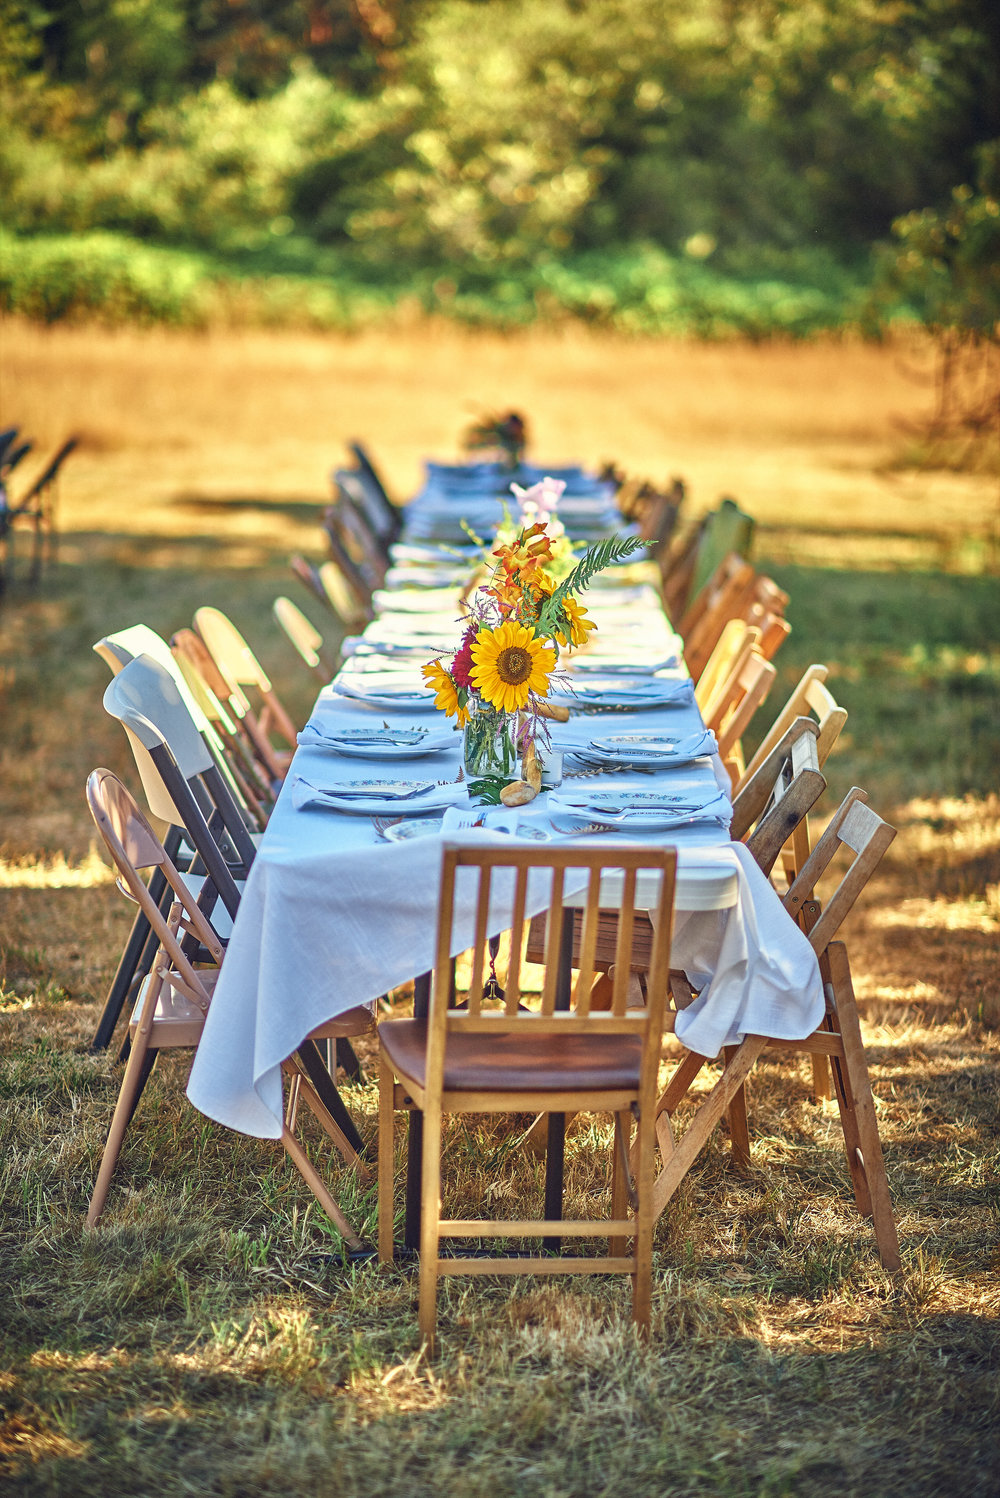 plum nelli outdoor dinner table settings for farm wedding.jpg